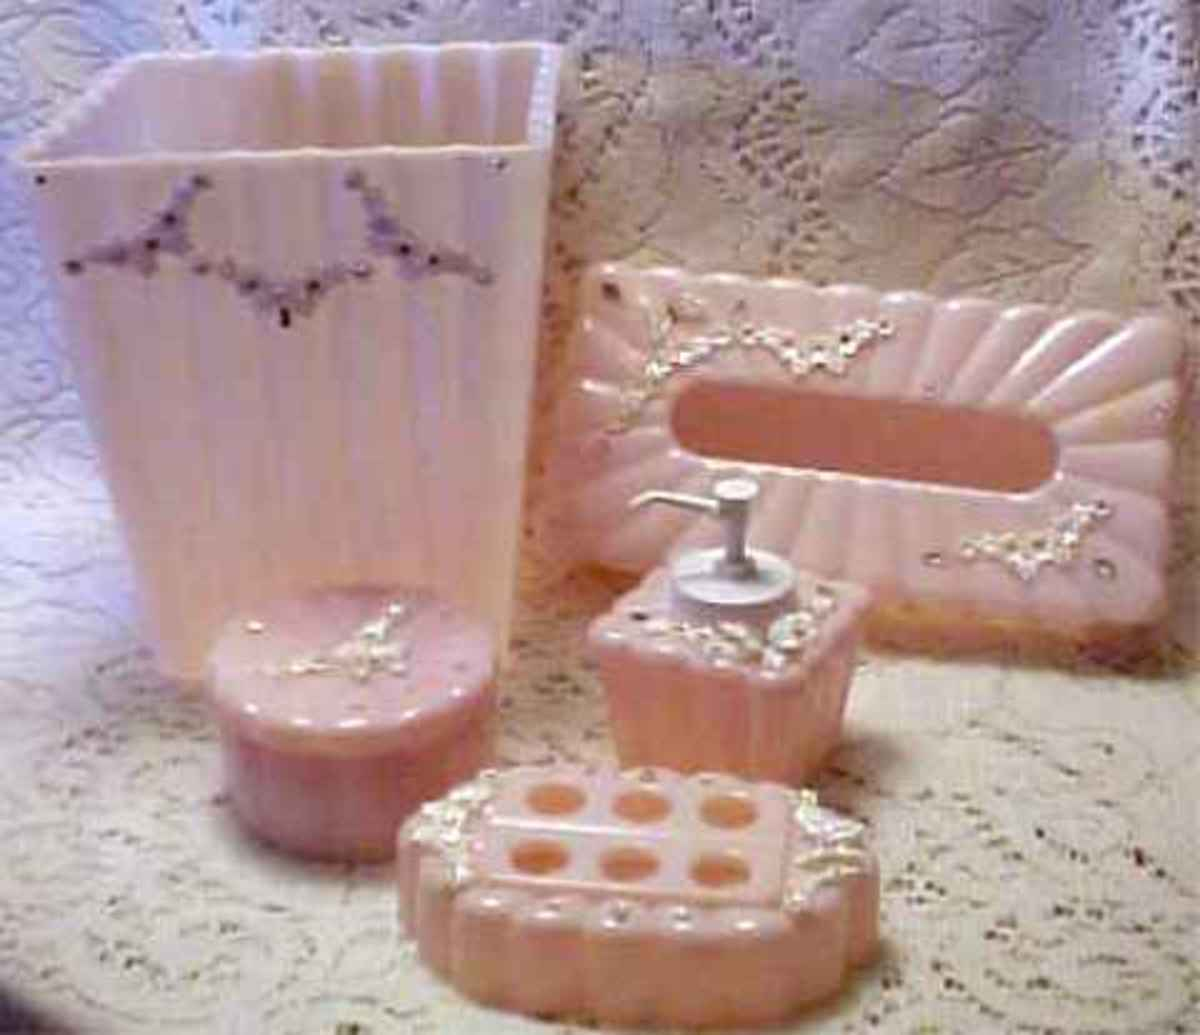 pink bathroom accessories such as toothbrush holder, tissue box, water, perfume and wastebasket